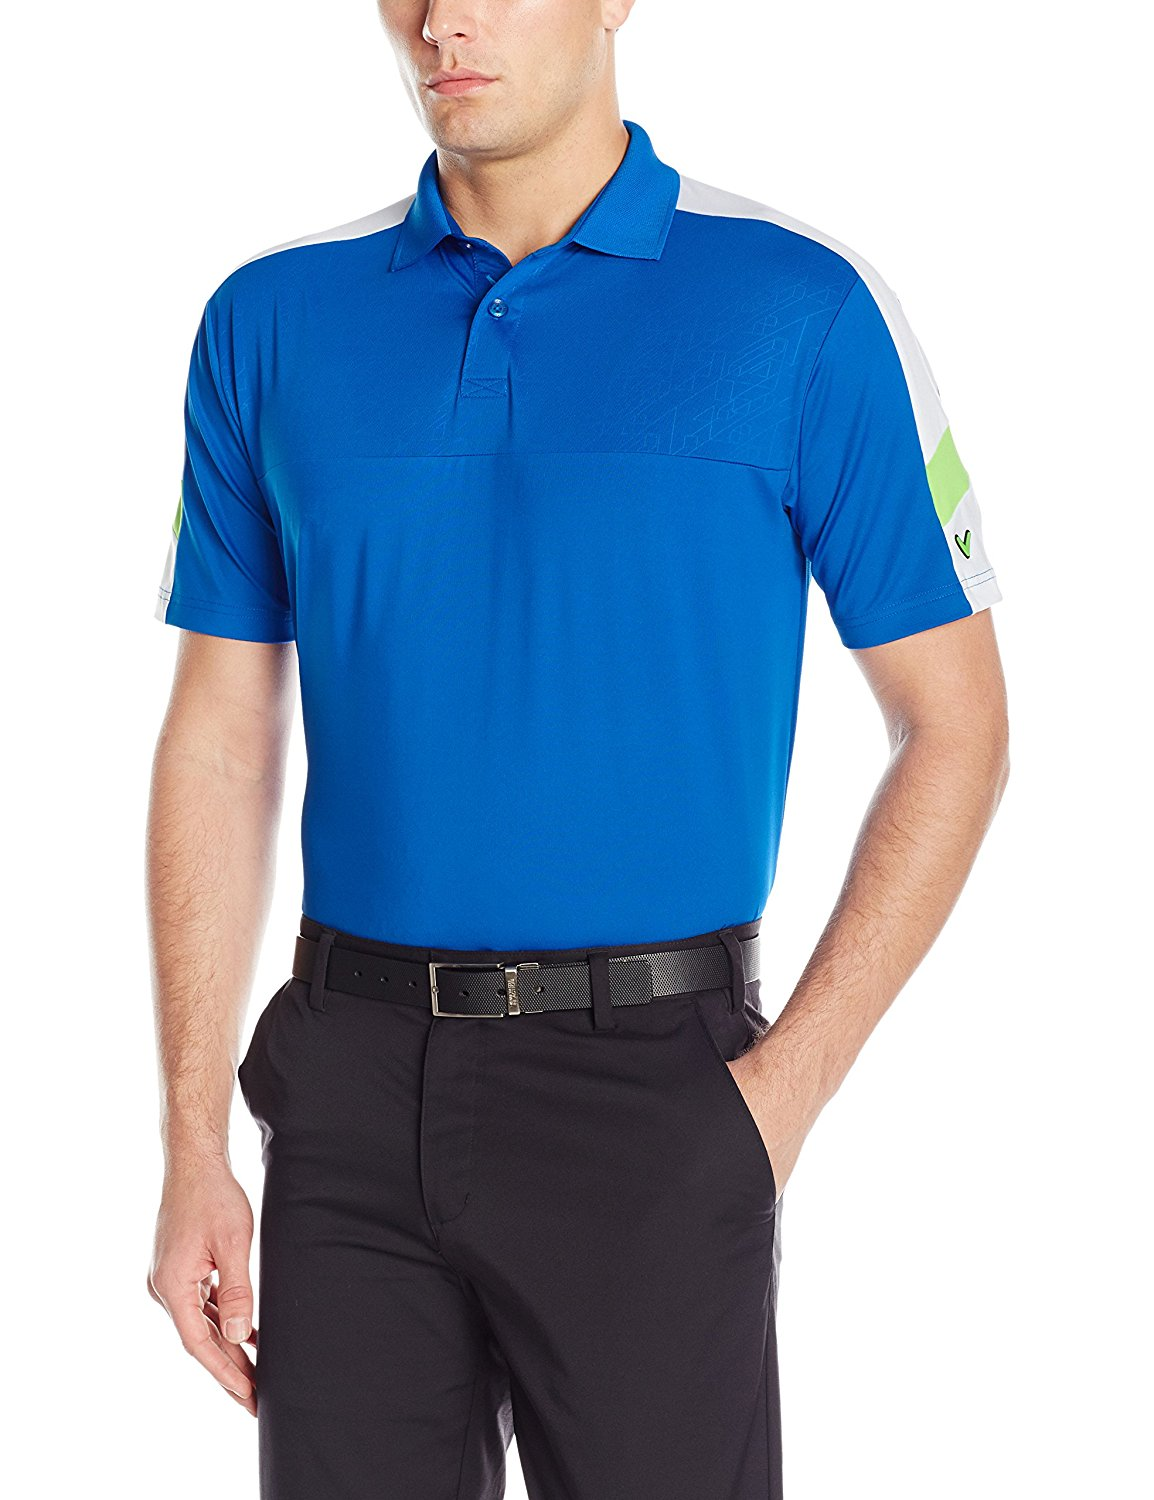 Callaway Men's Golf Performance Short Sleeve Embossed Three Color Blocked Polo Shirt